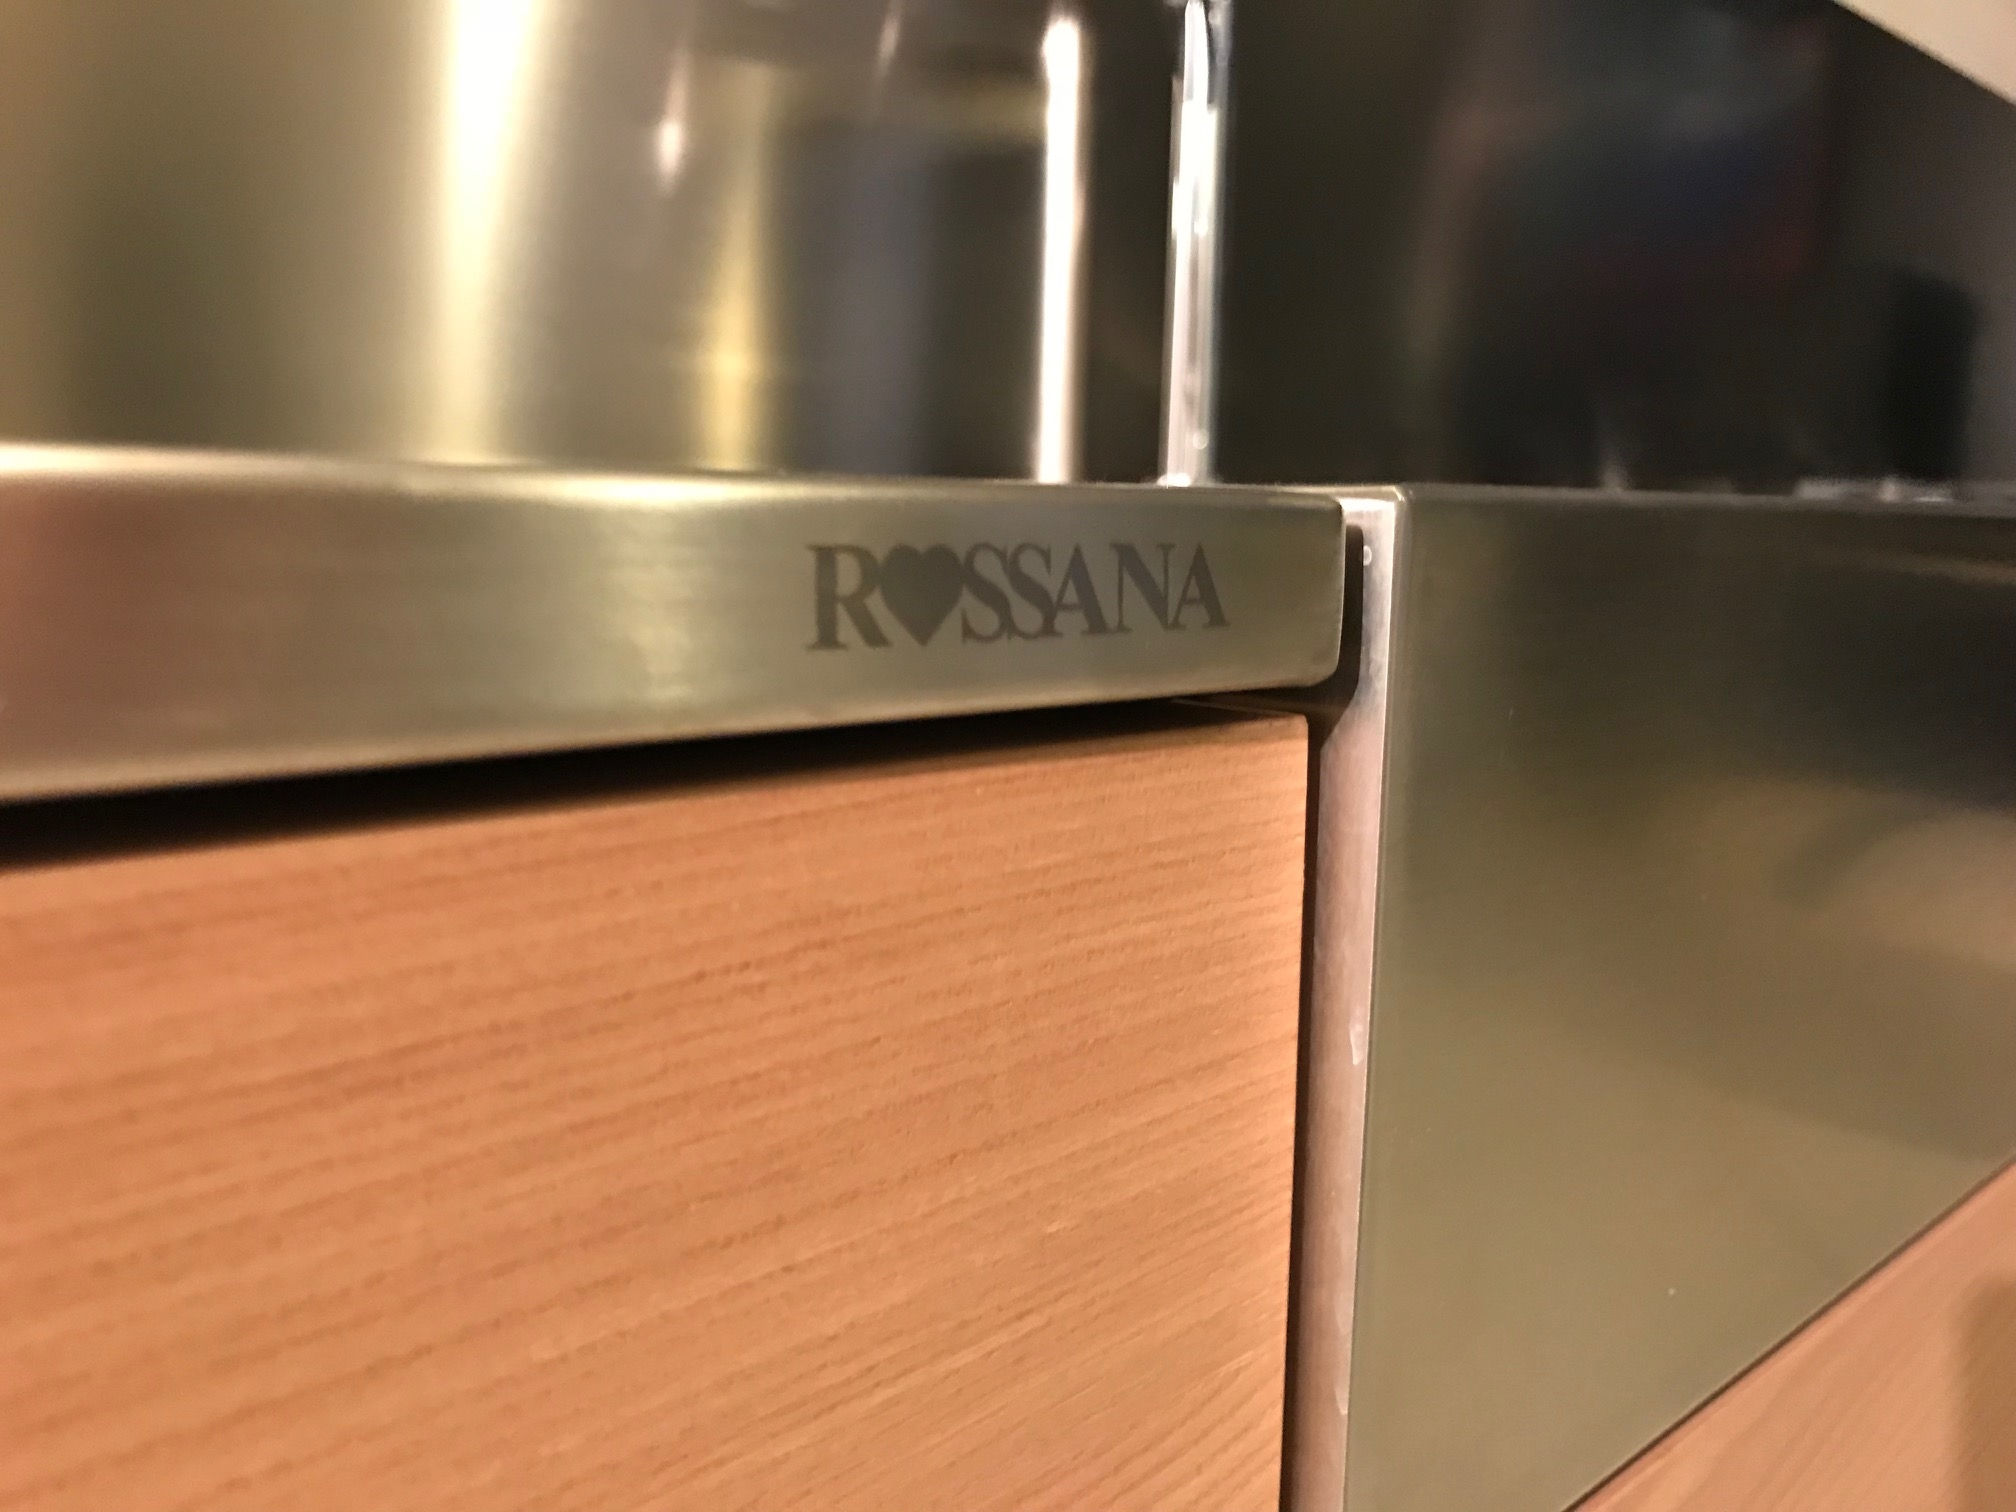 Best Cucine Rb Rossana Gallery - ubiquitousforeigner.us ...